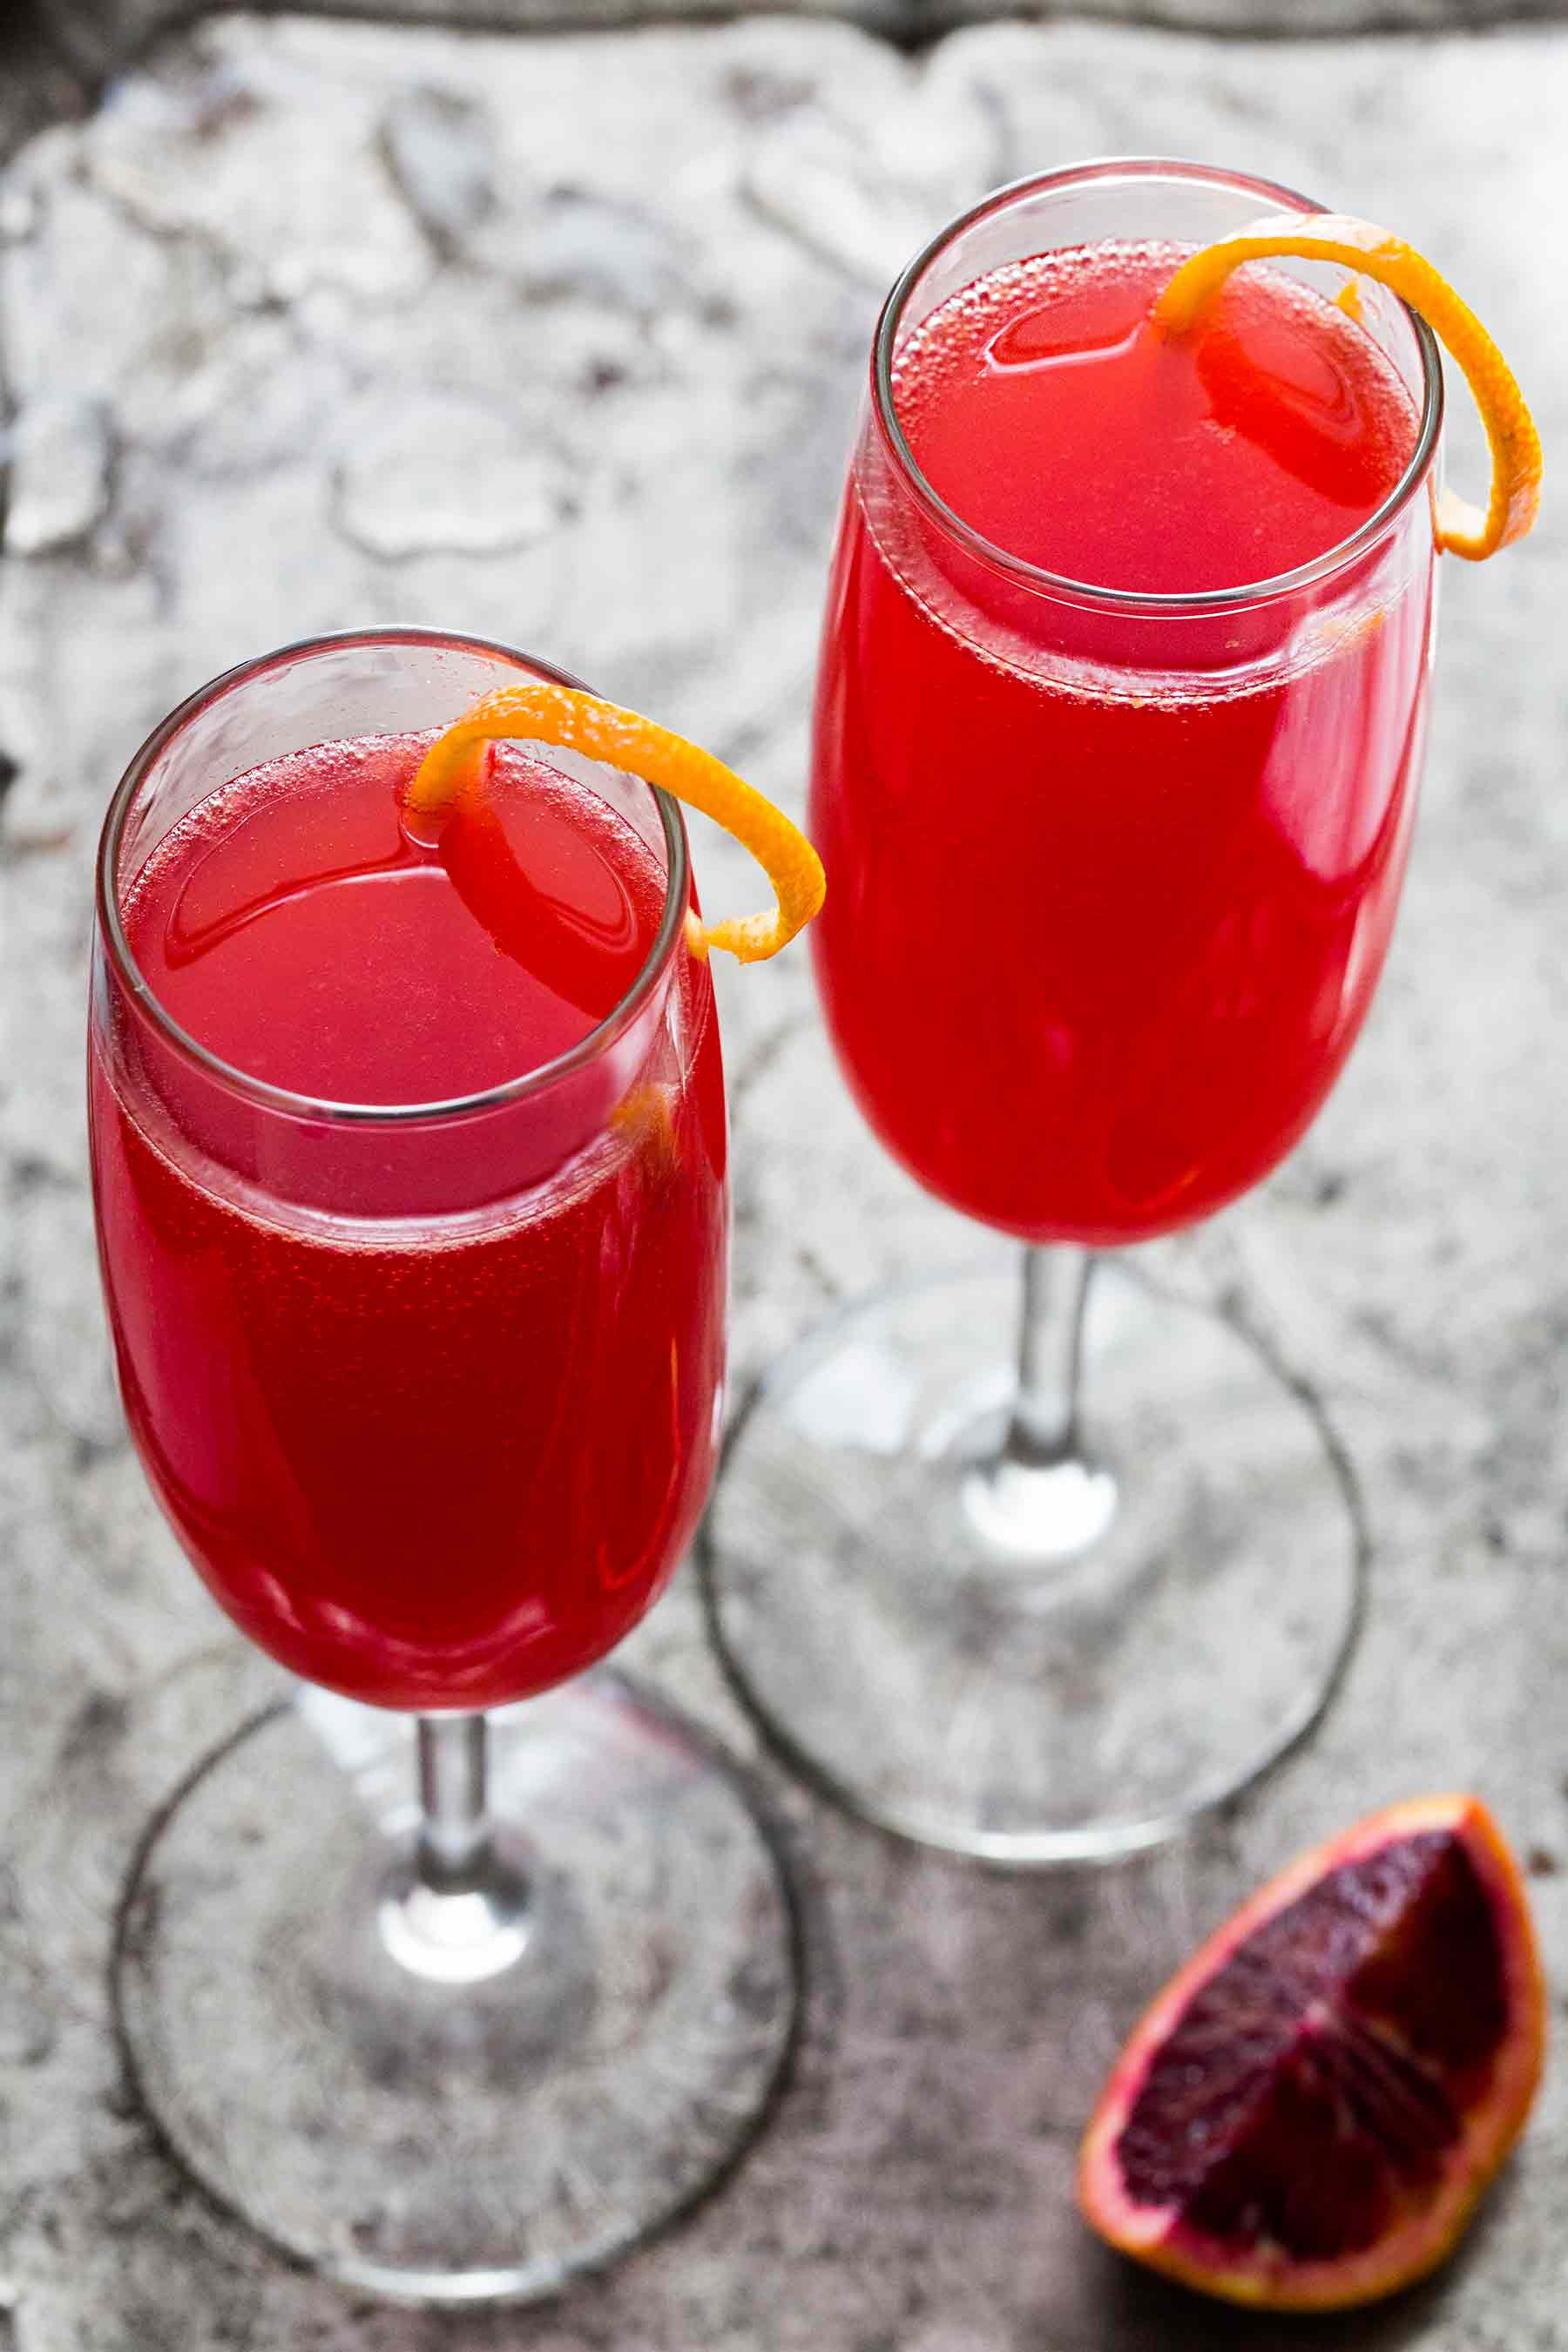 Blood-orange-french-75-cocktail-vertical-a-1800